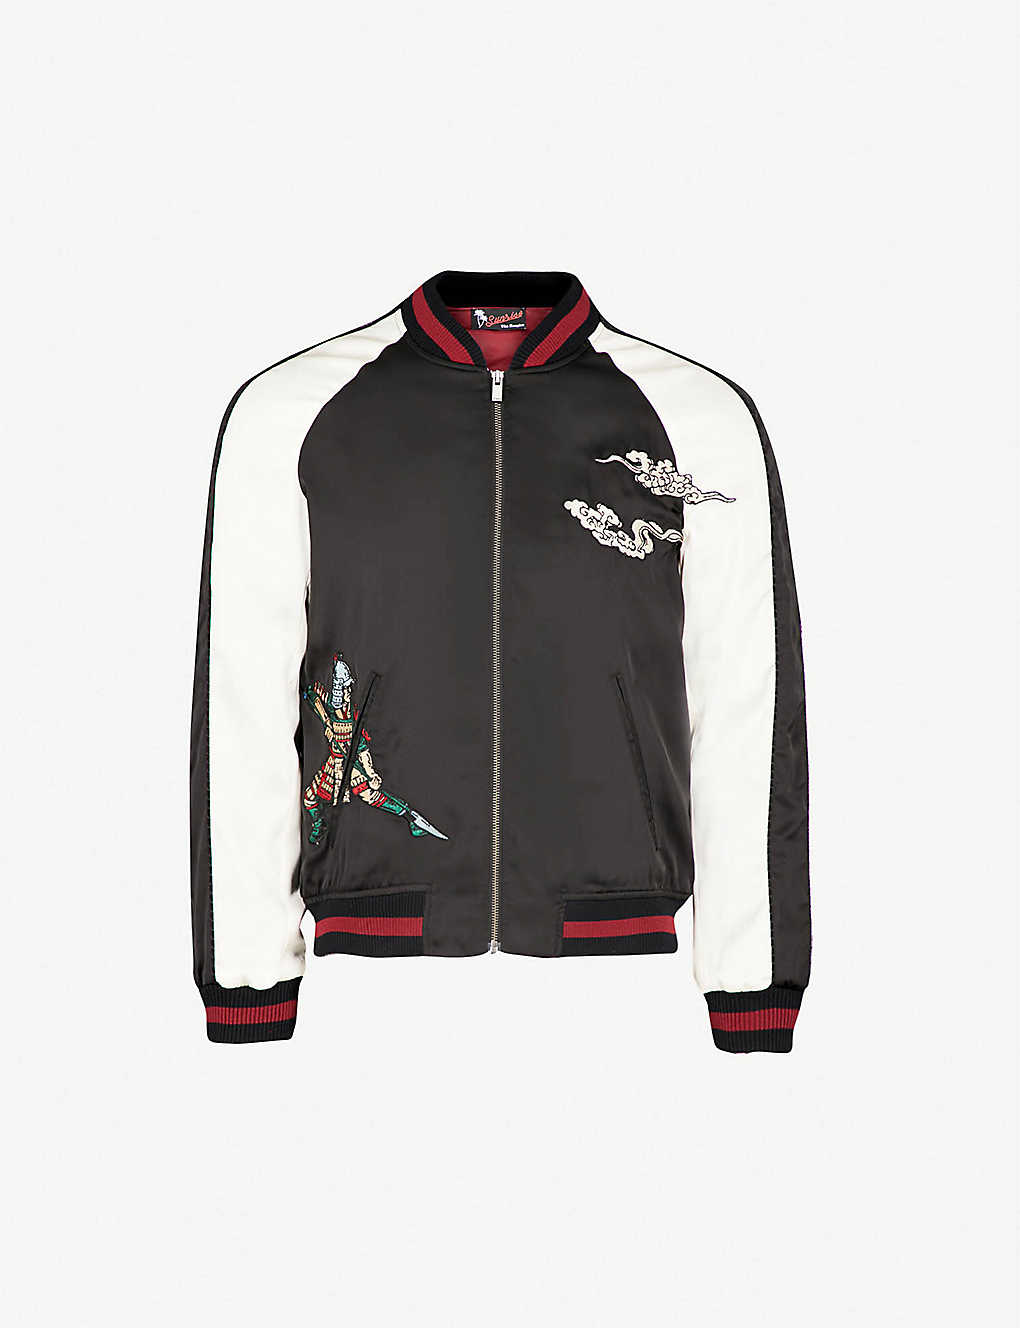 3cd40cec4 THE KOOPLES - Embroidered satin bomber jacket | Selfridges.com